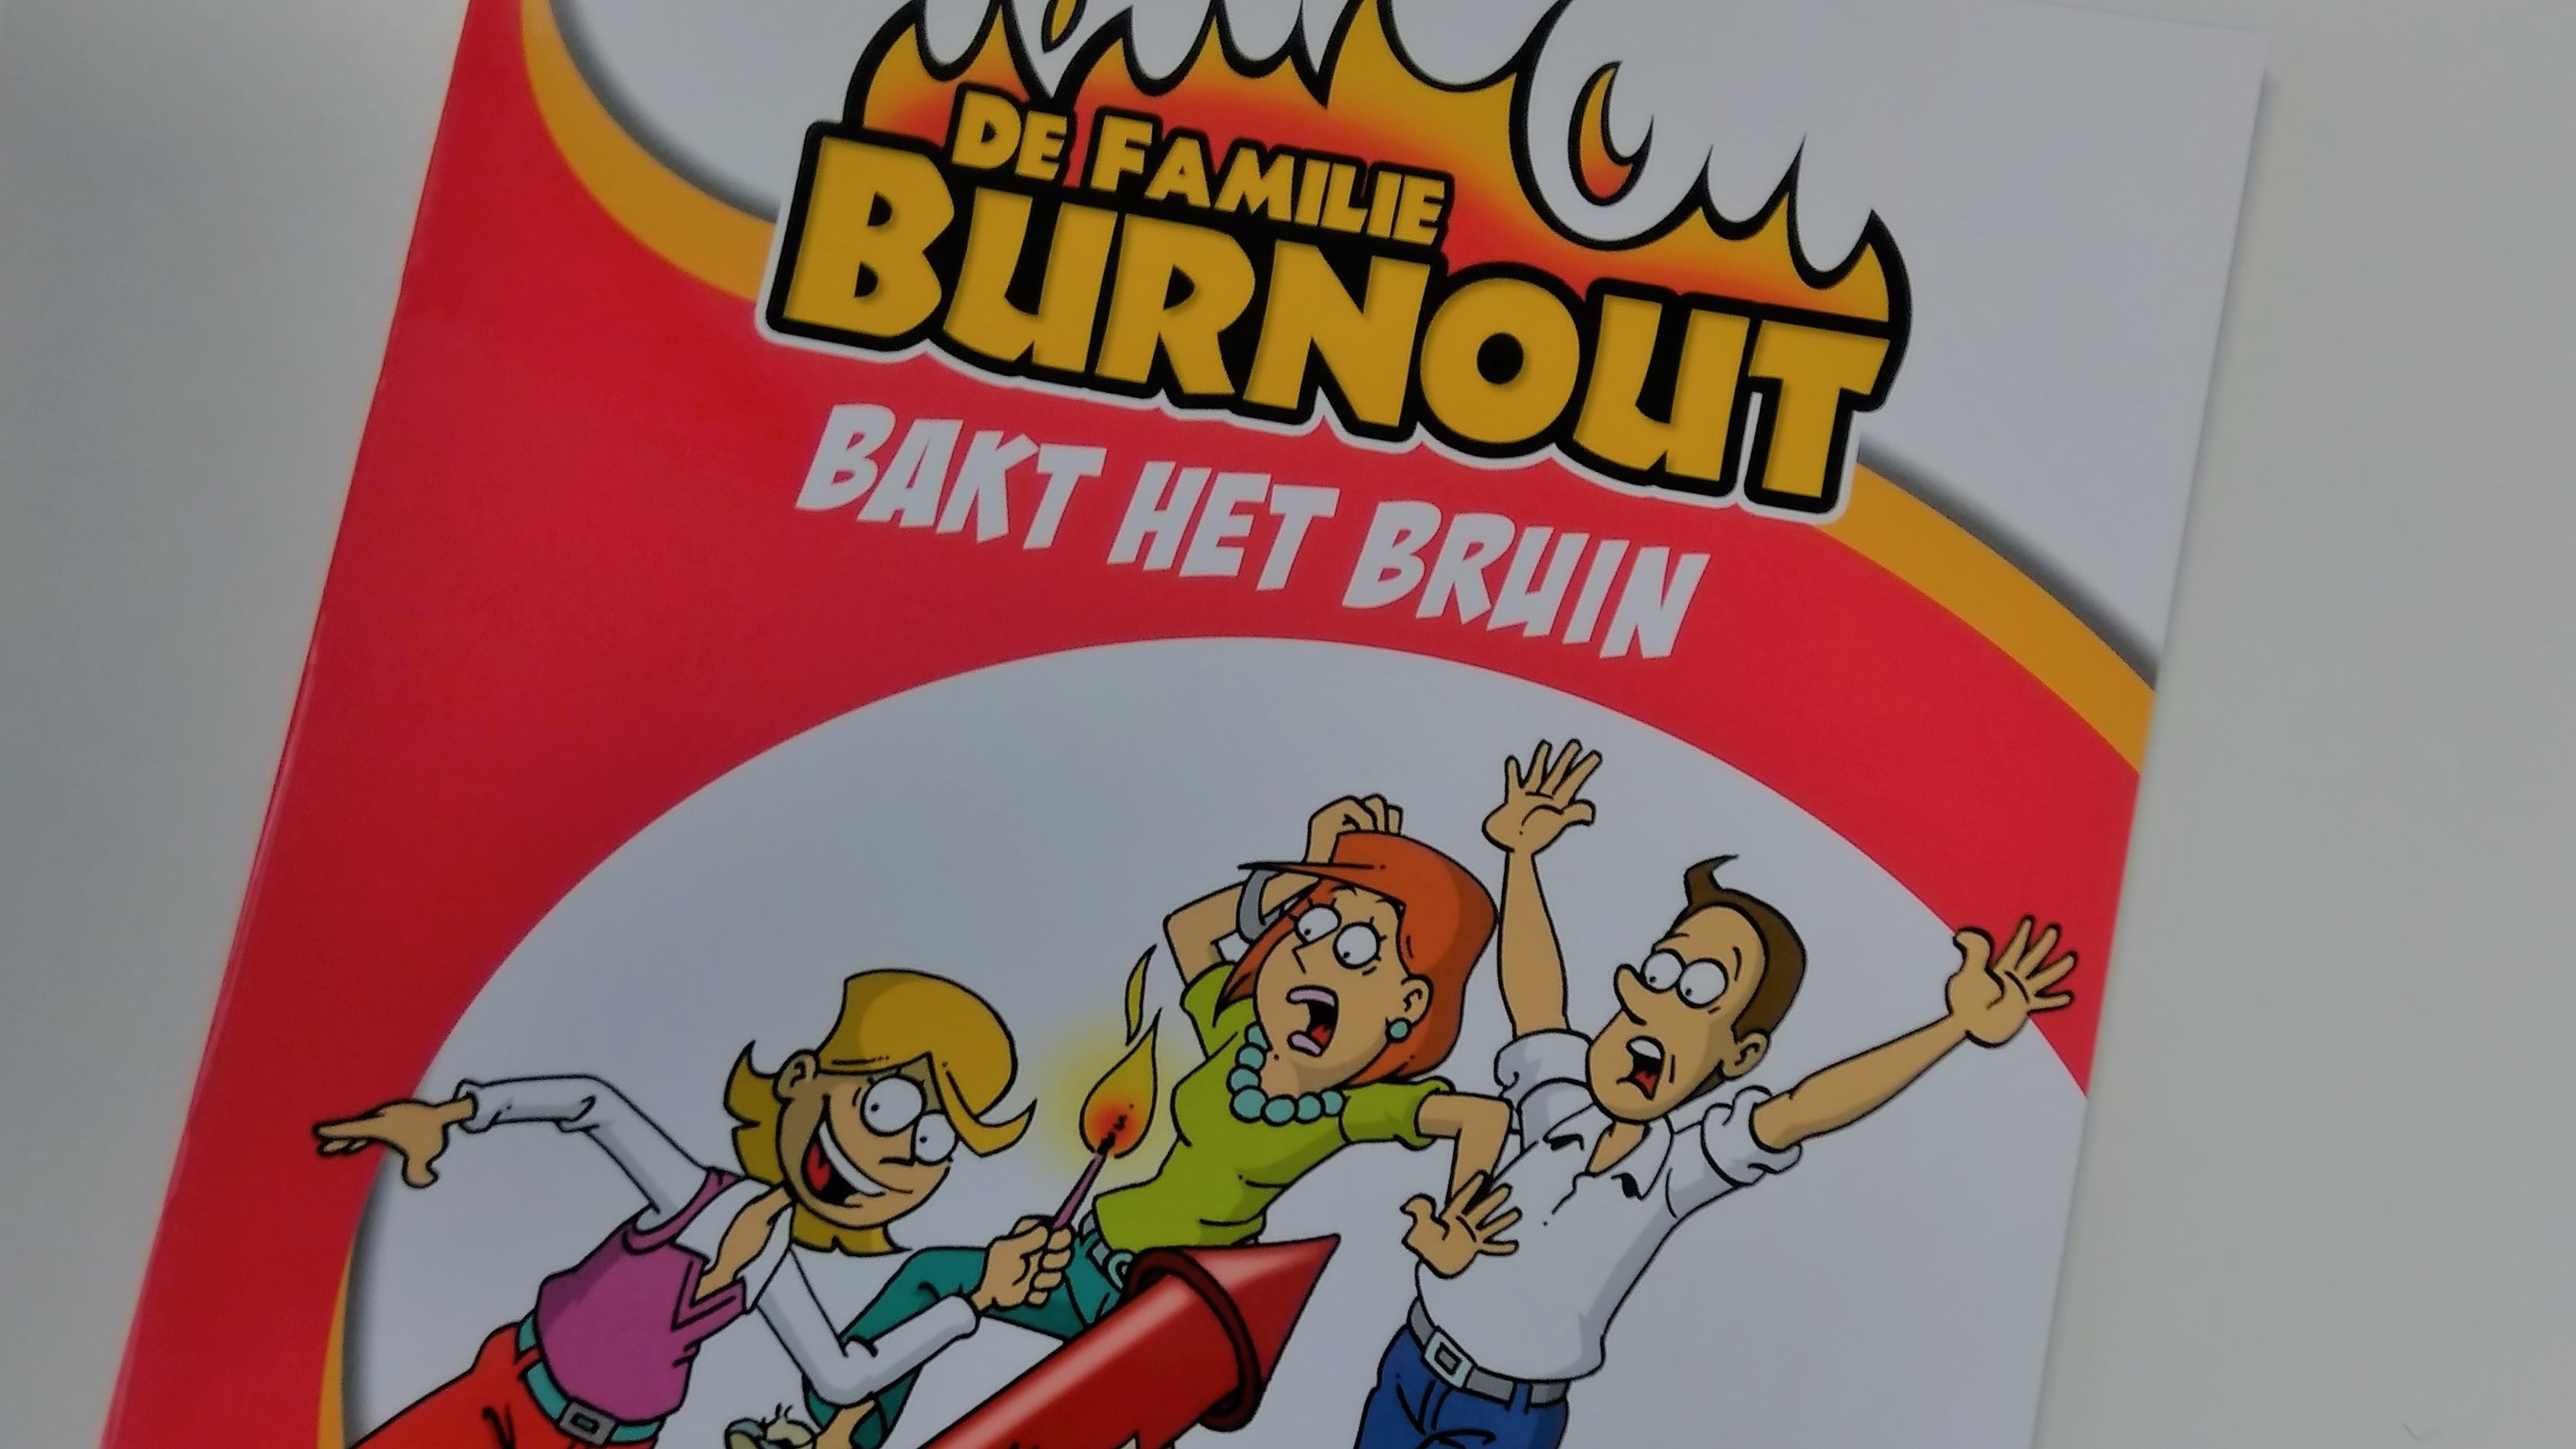 Familie Burnout in de bib!